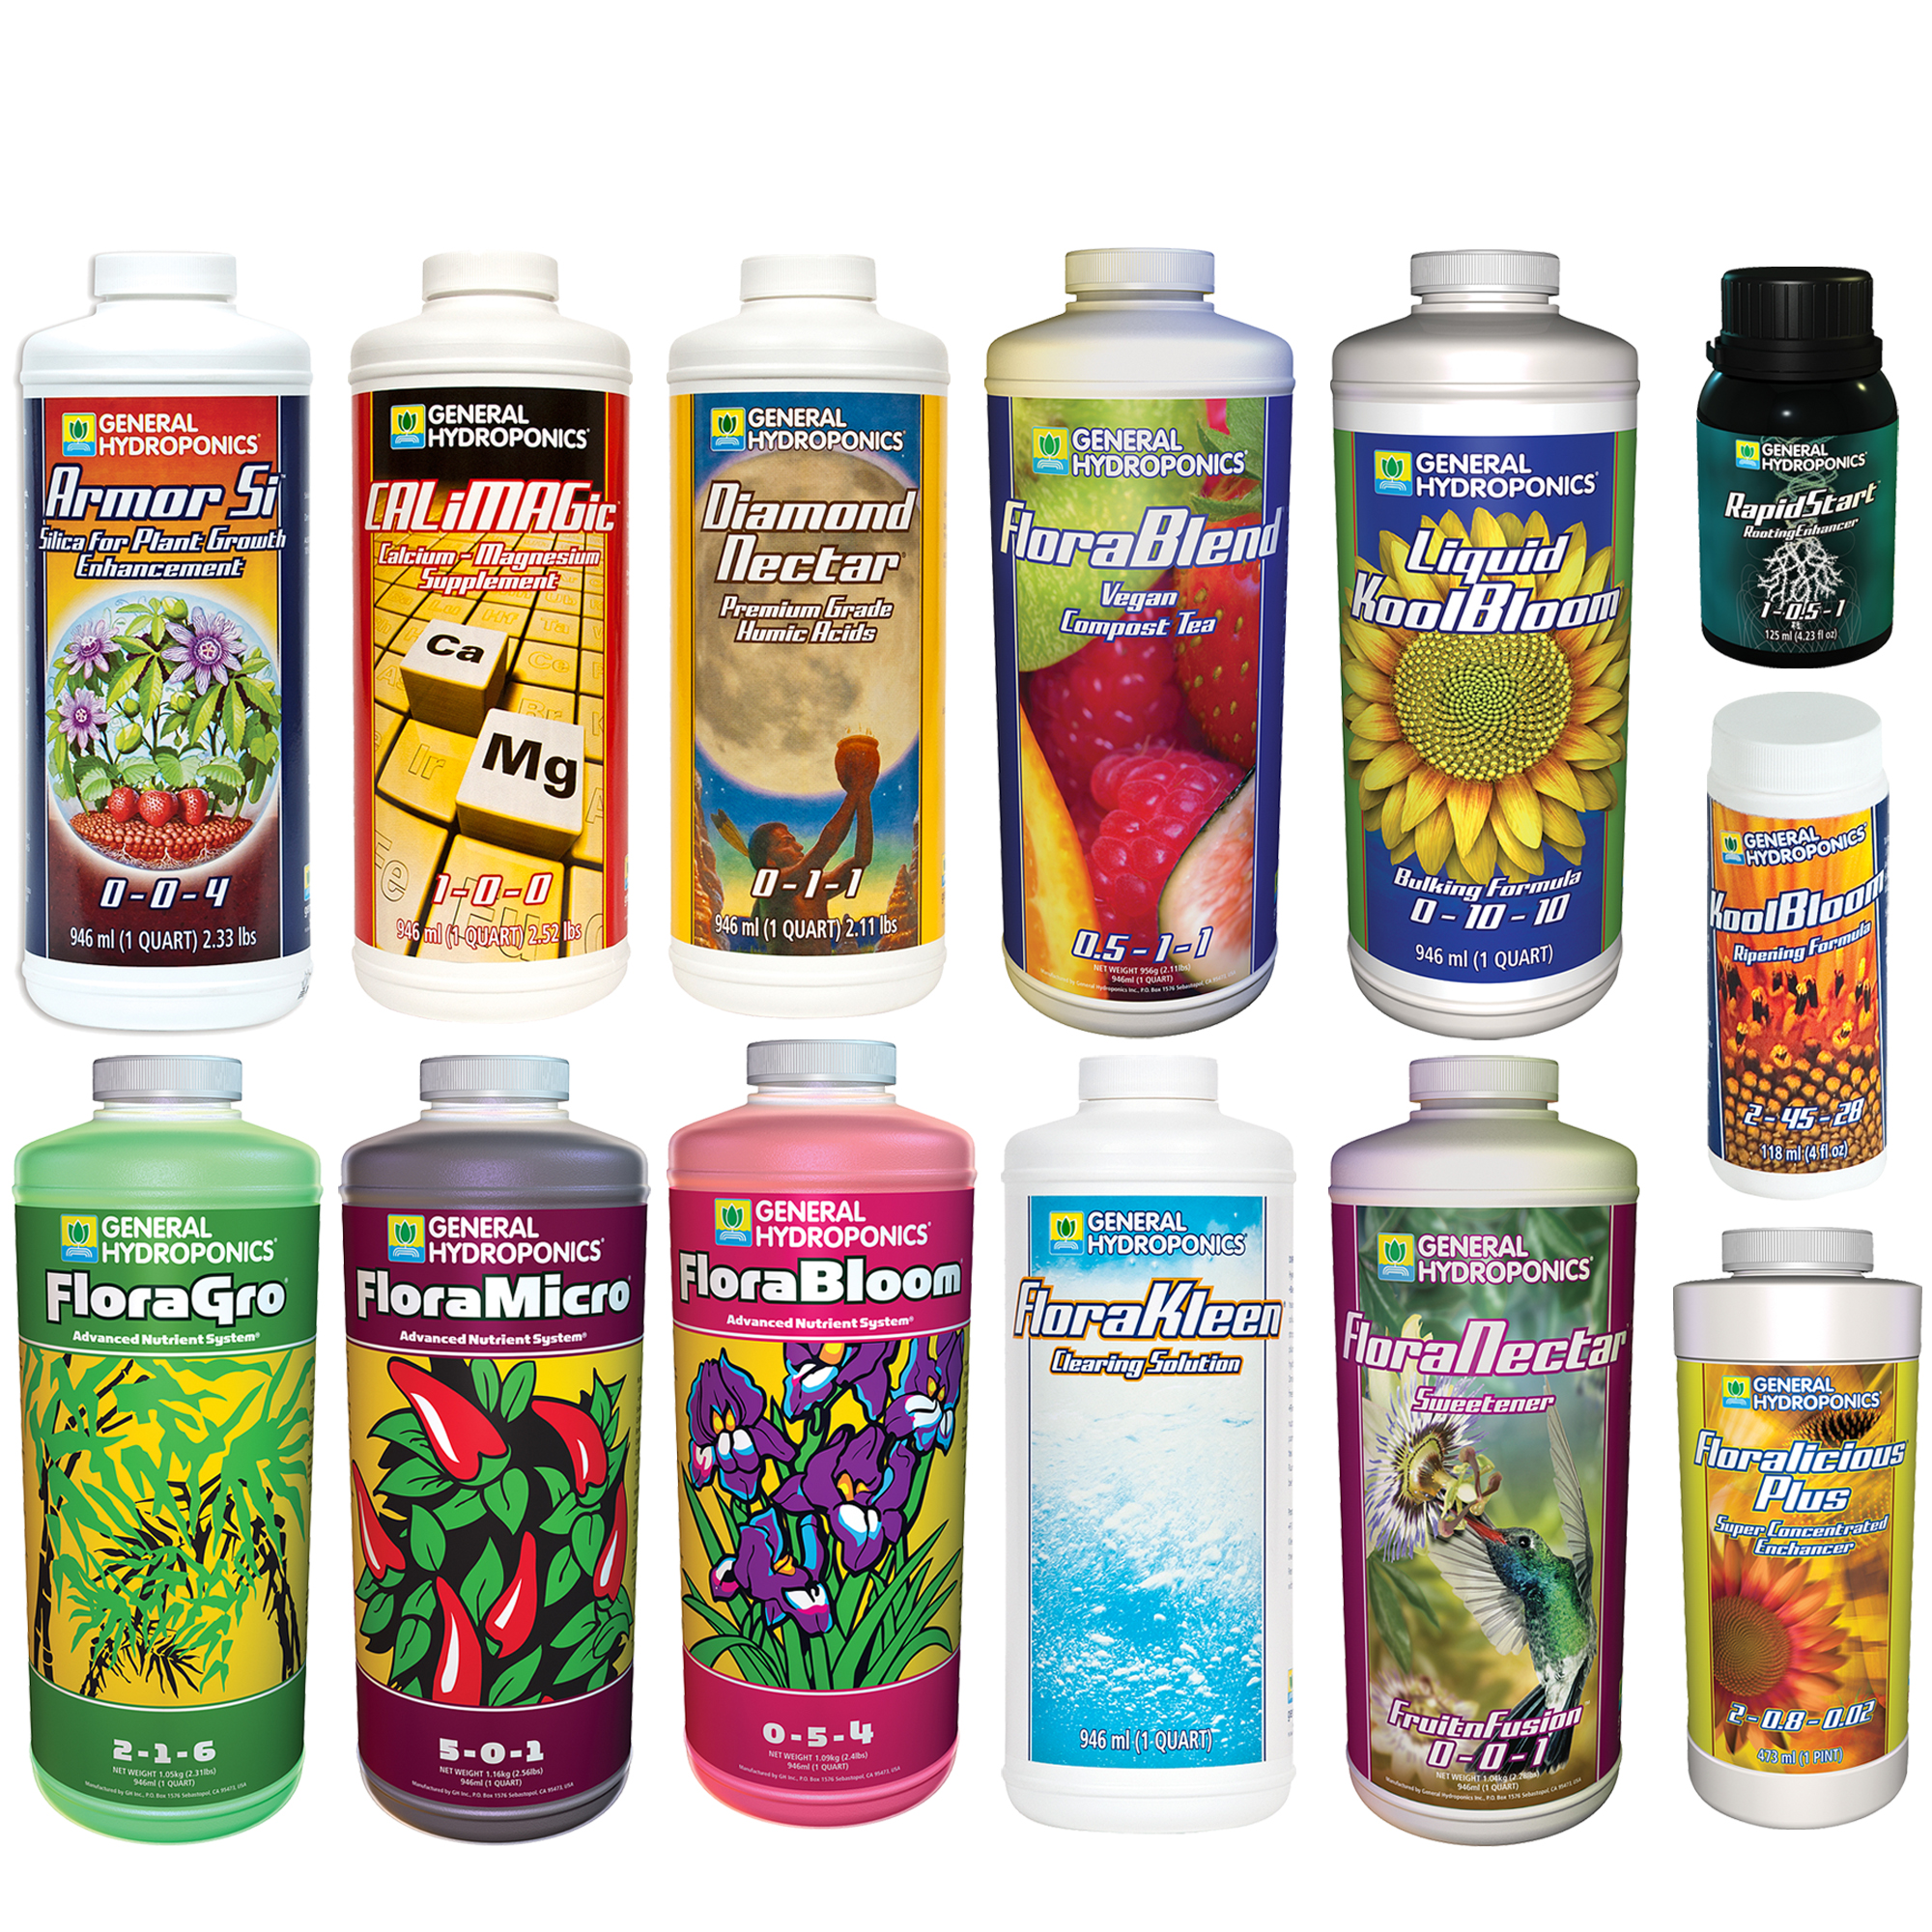 General Hydroponics Expert Plus Nutrient Kit – Small